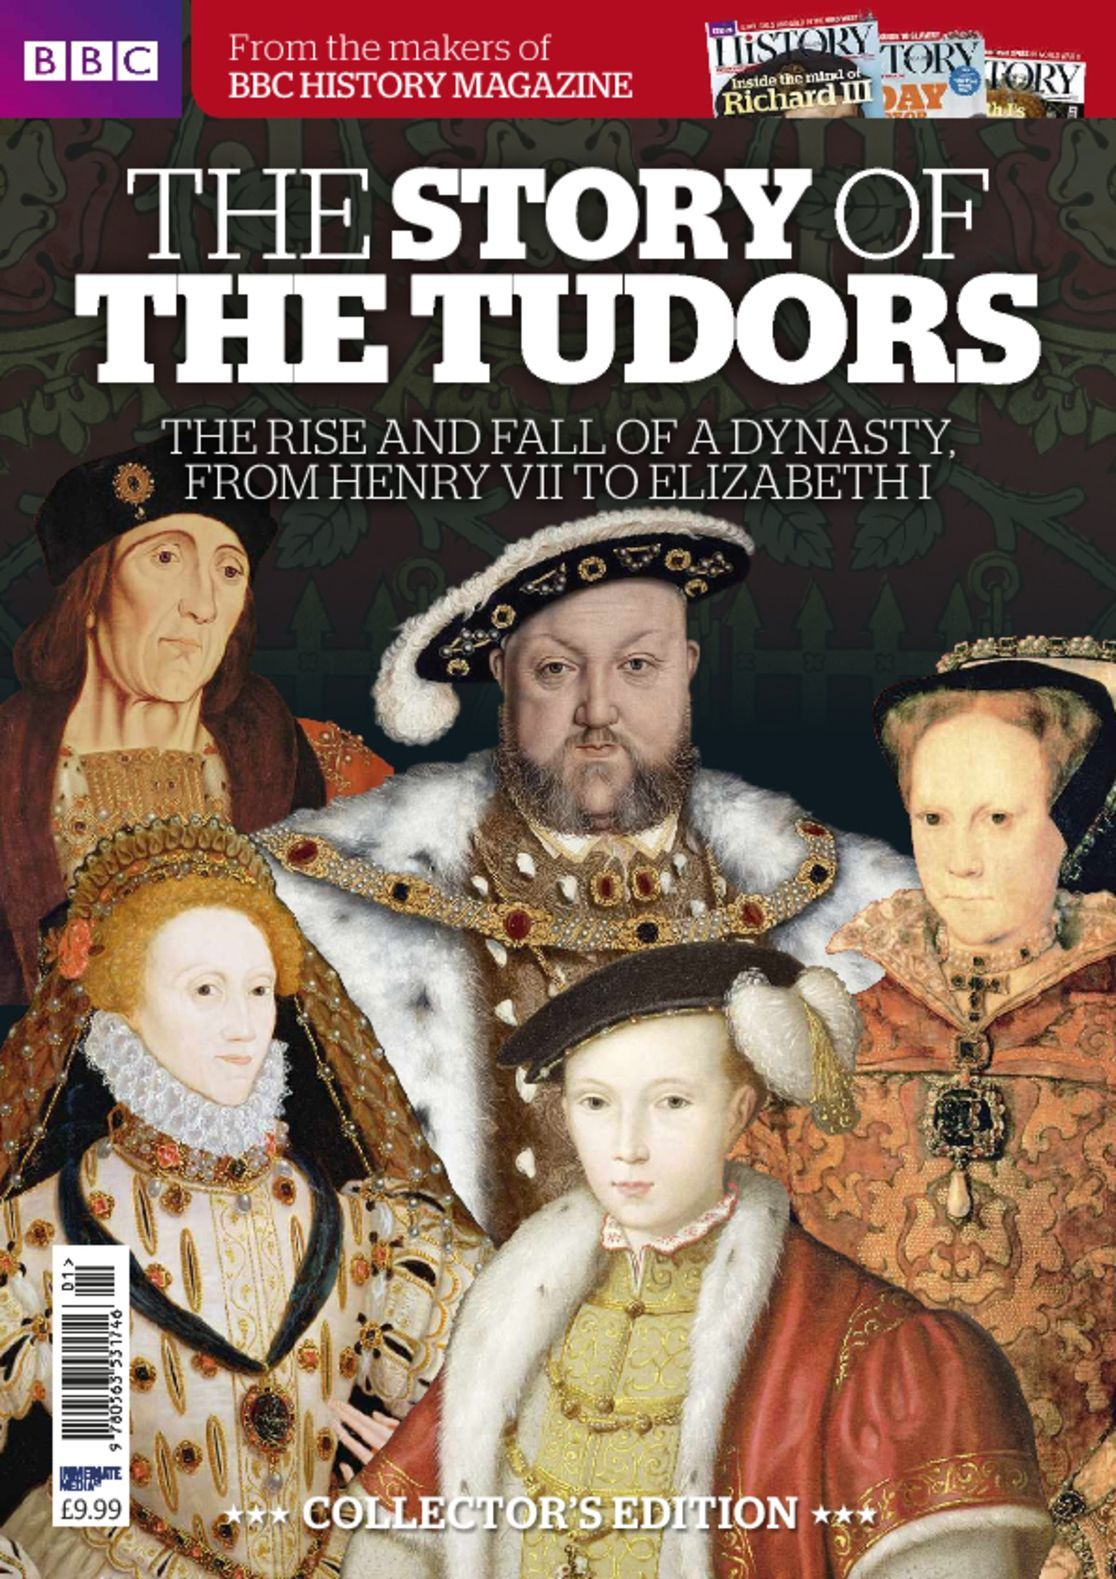 The Story of The Tudors from the makers of BBC History Digital